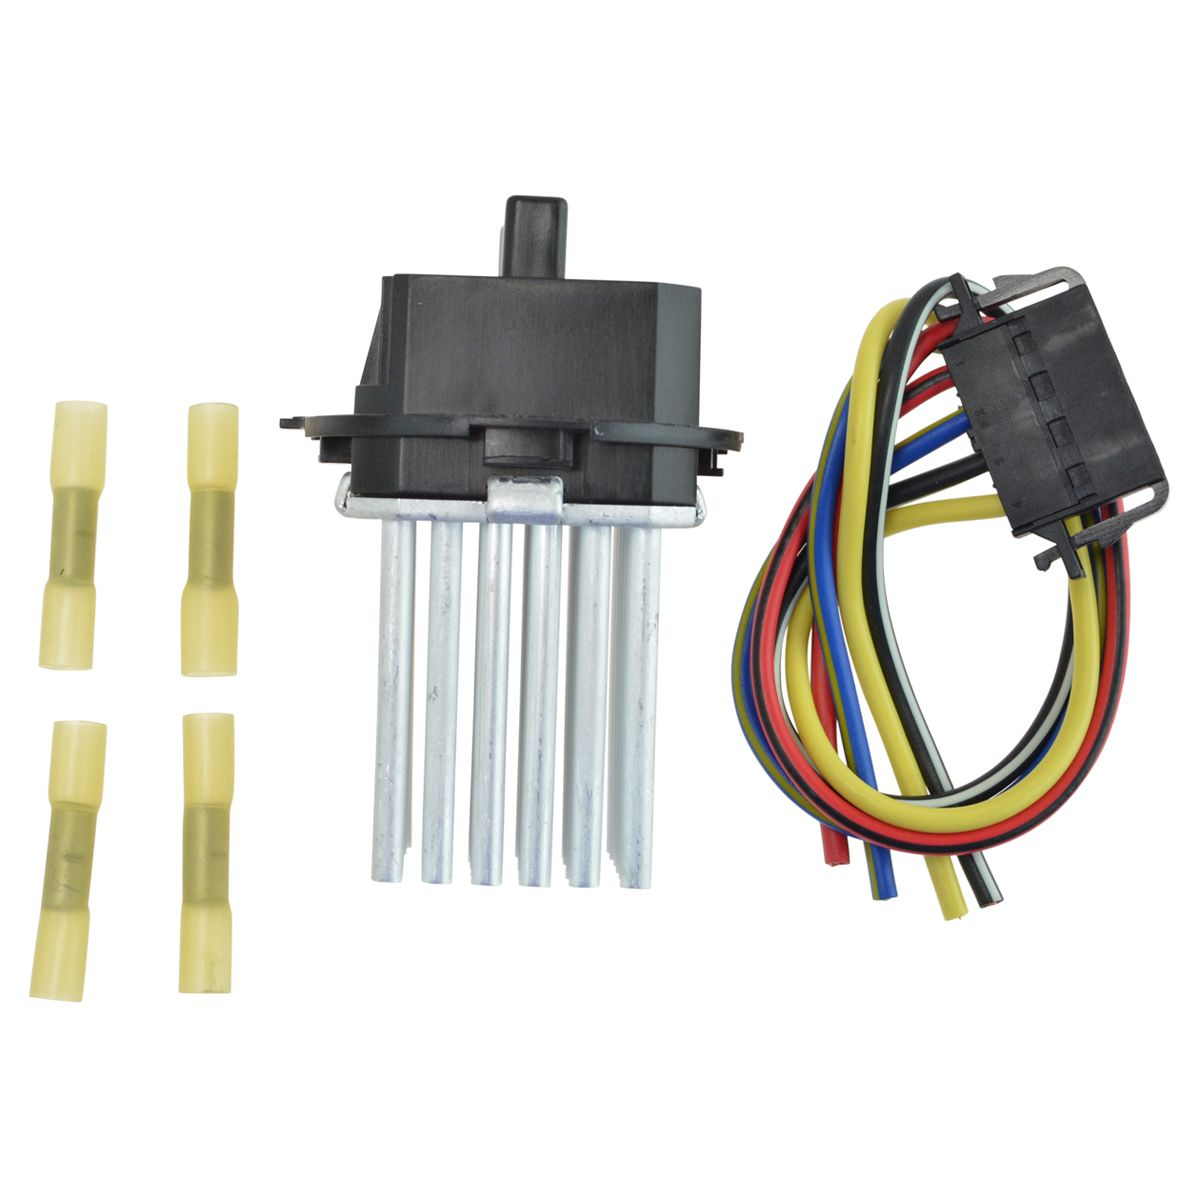 Dorman Heater Blower Motor Resistor with Pigtail for Chevy GMC SUV Truck Pickup